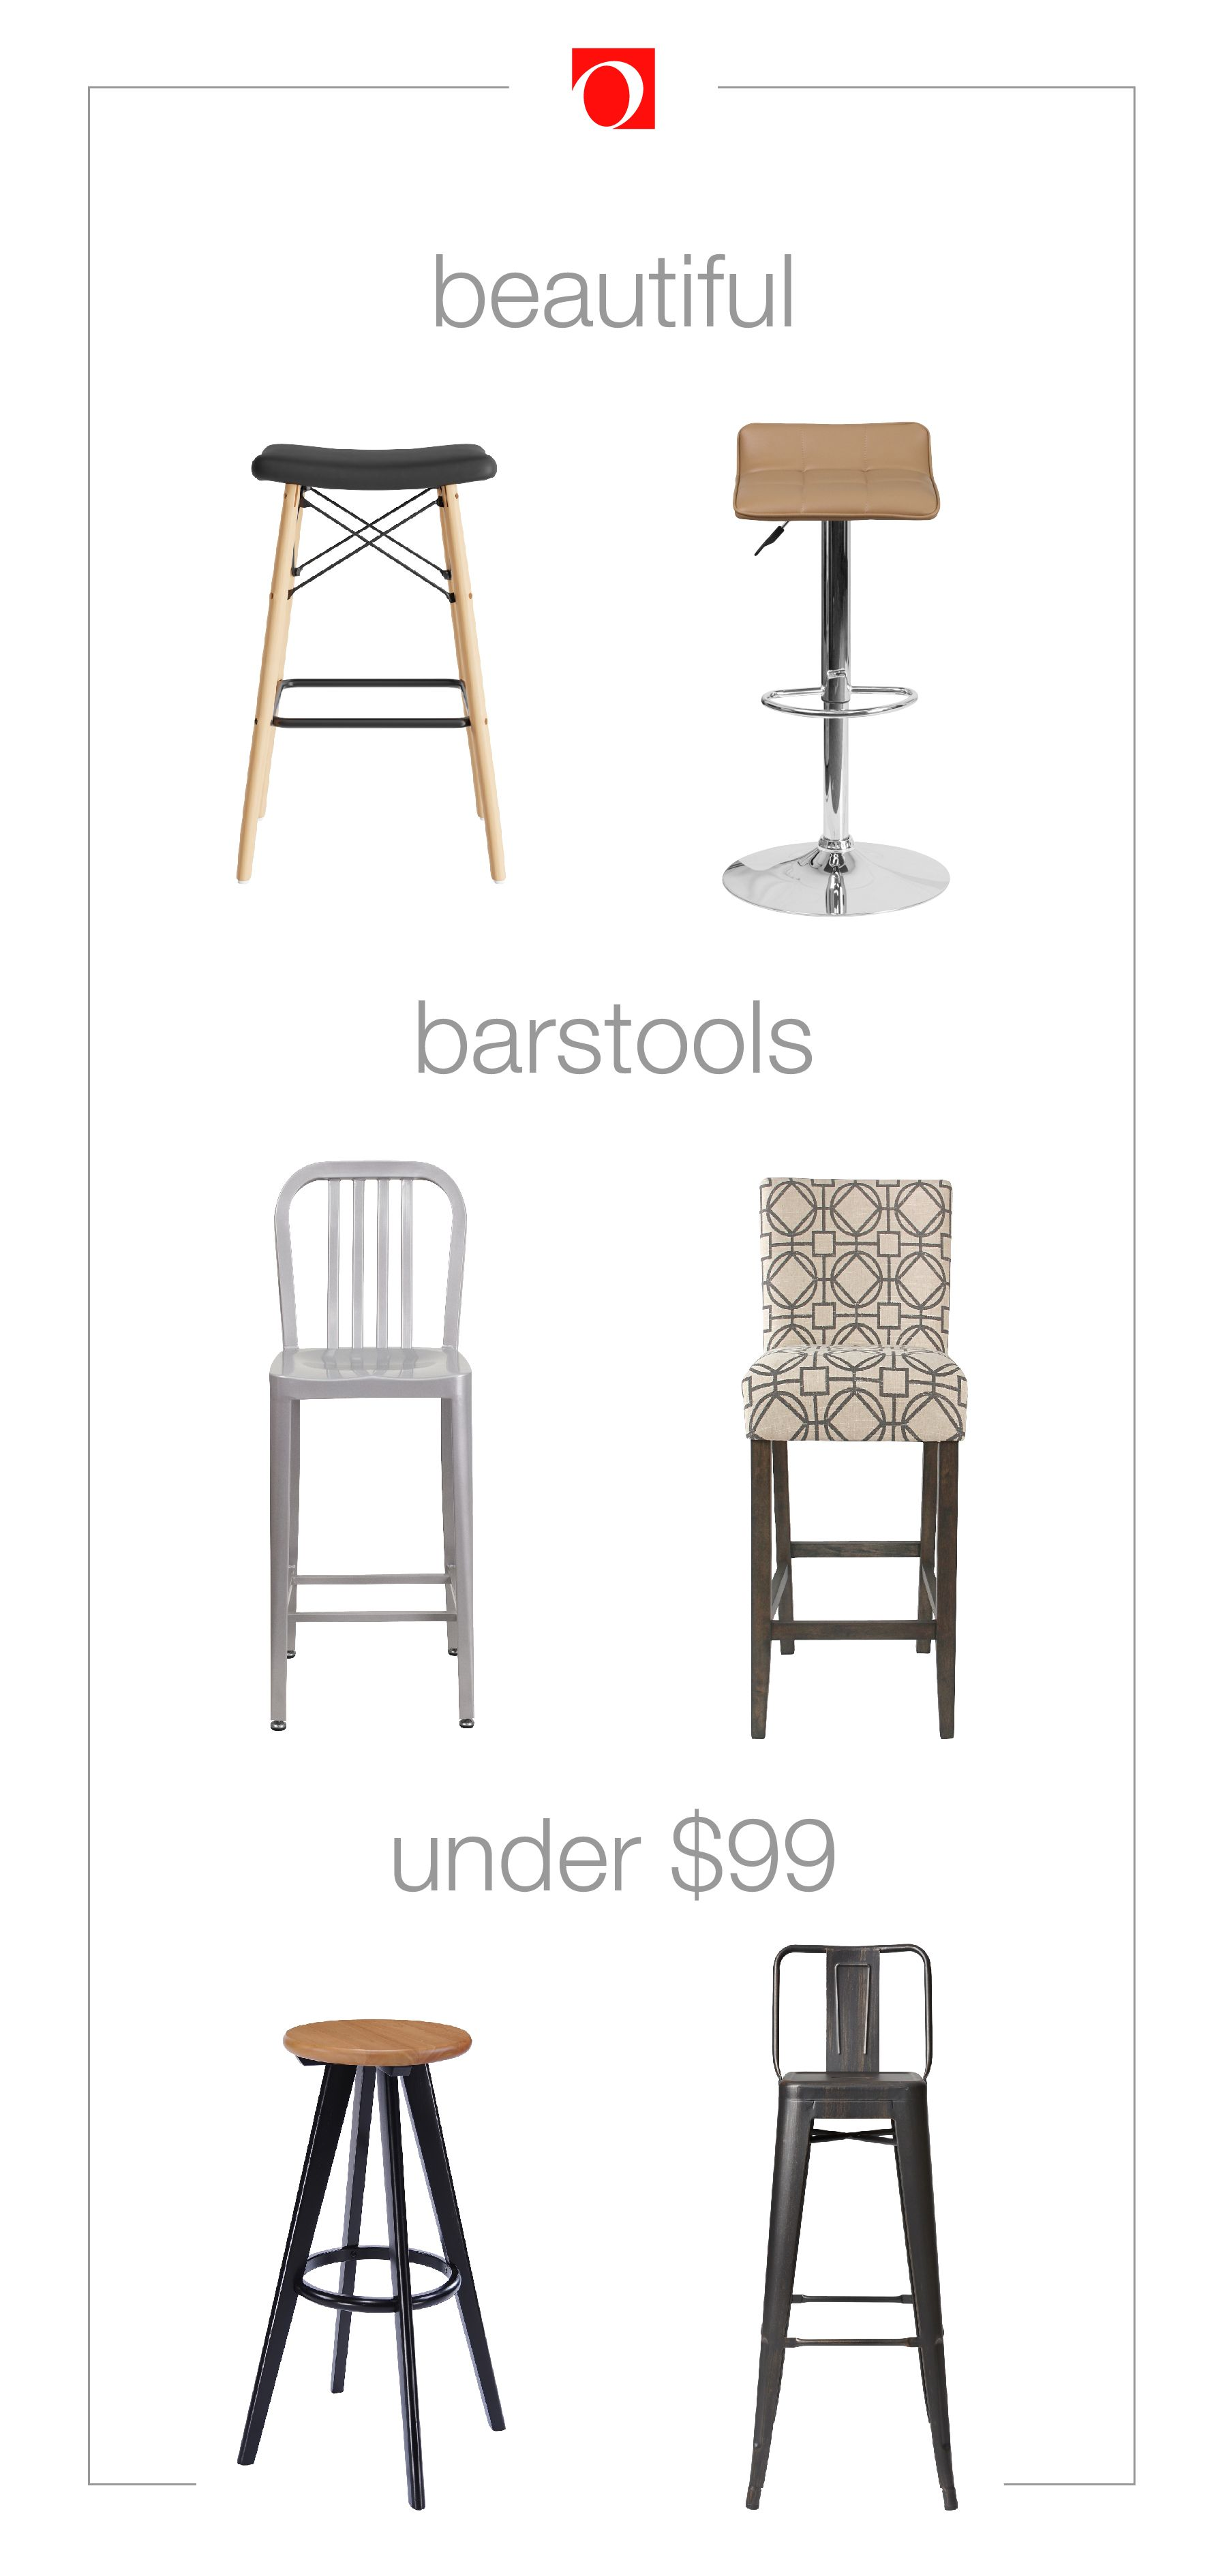 Whether You Need Comfortable Upholstered Stools For Your Kitchen Counters Or Simple Metal Stools For The Ho Diy Home Decor On A Budget Tuscan Design Home Decor